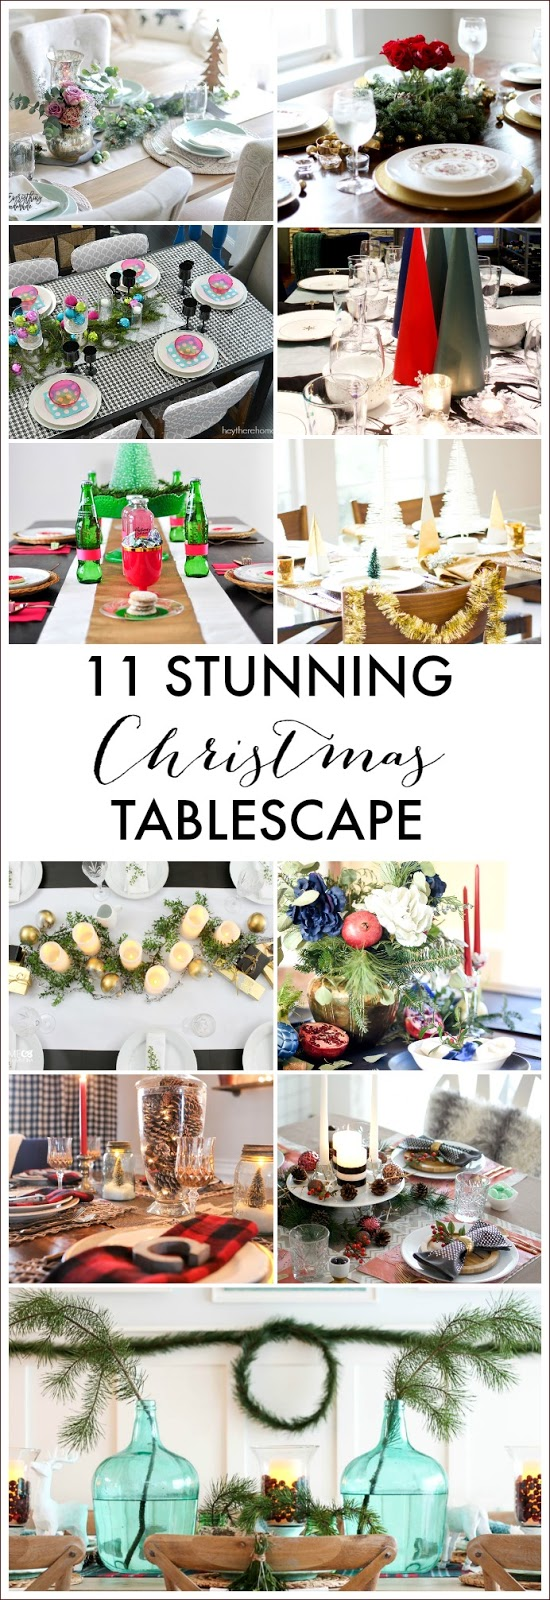 11 stunning Christmas tablescapes